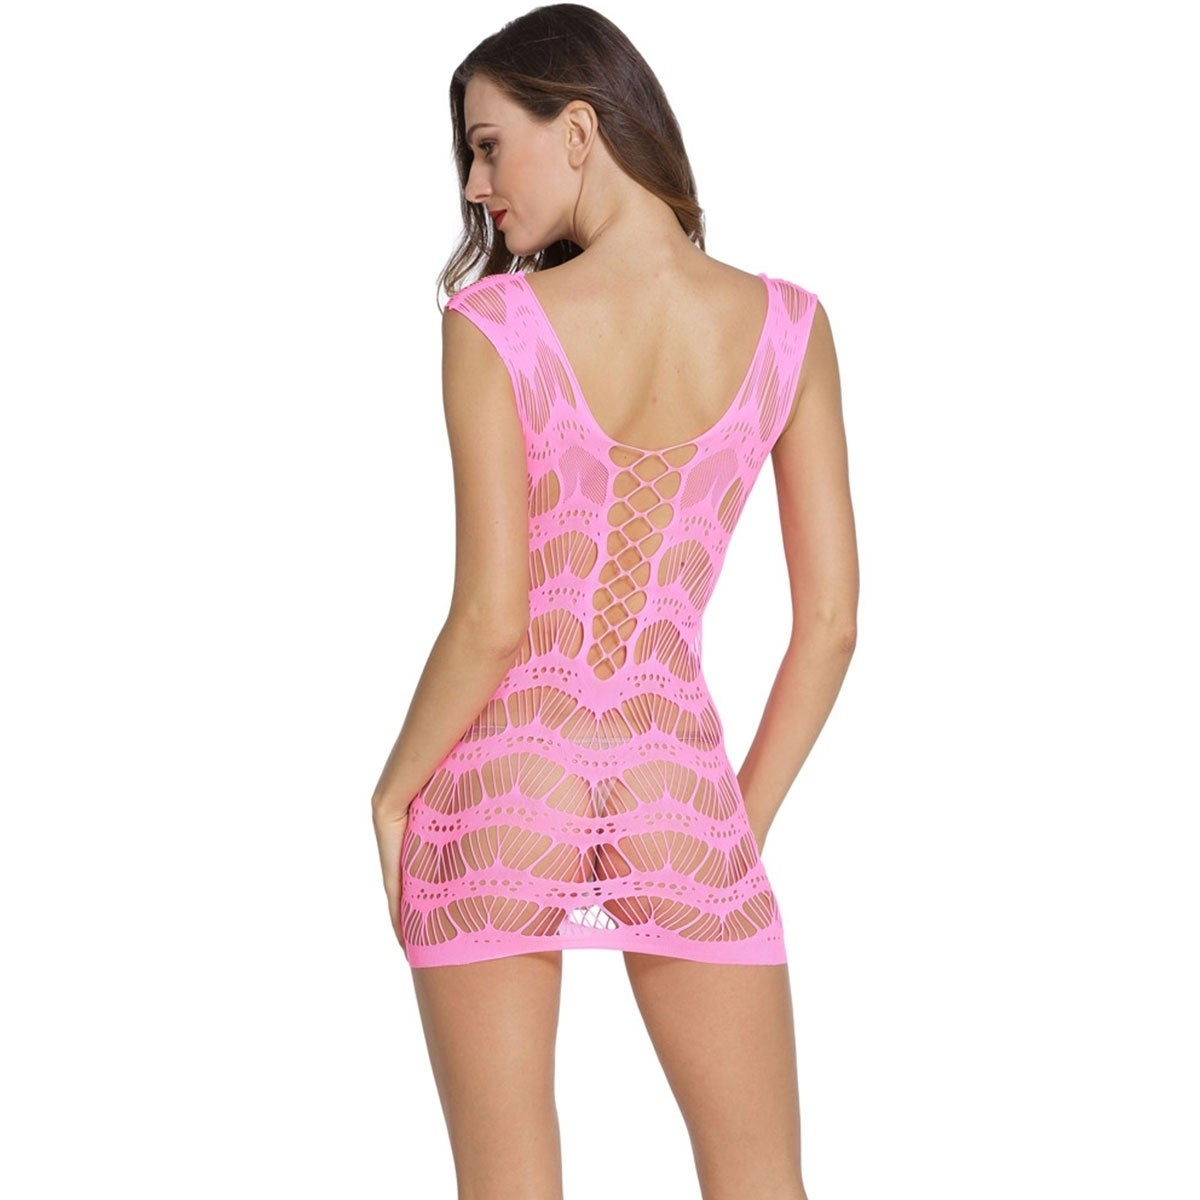 5e66bea221 Shop Sexly Crocheted Lace Hollow-out Chemise Dress - Ships To Canada -  Overstock - 18222661